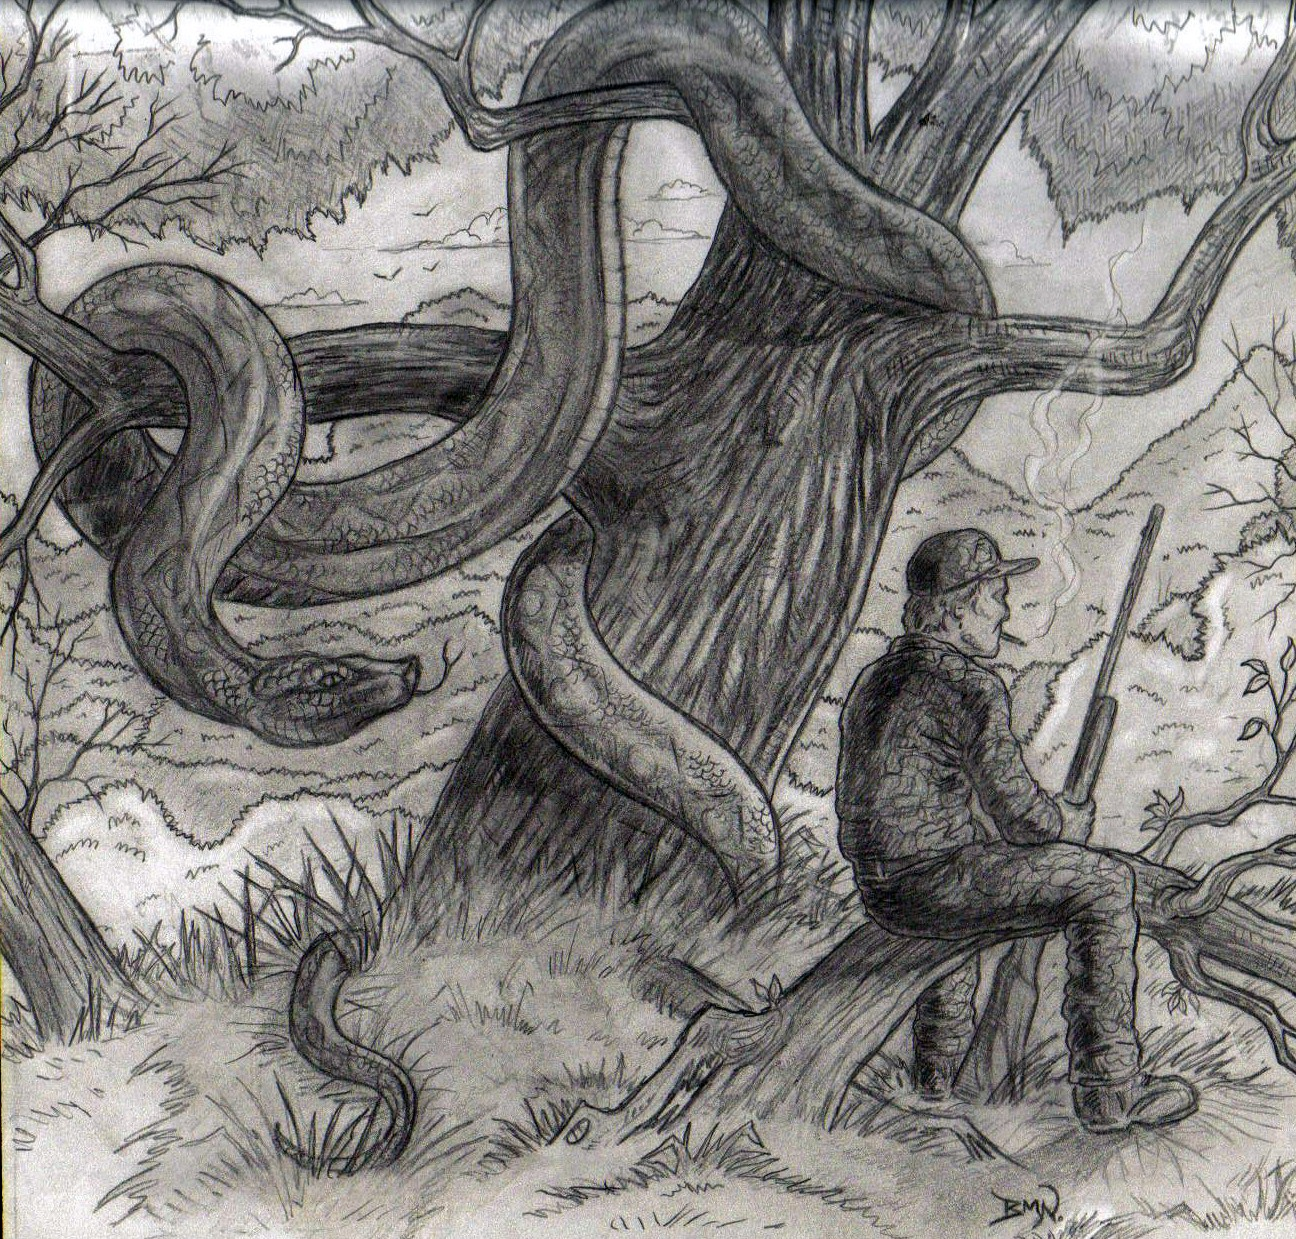 Drawn snake giant snake Dreams Real K Friday: or